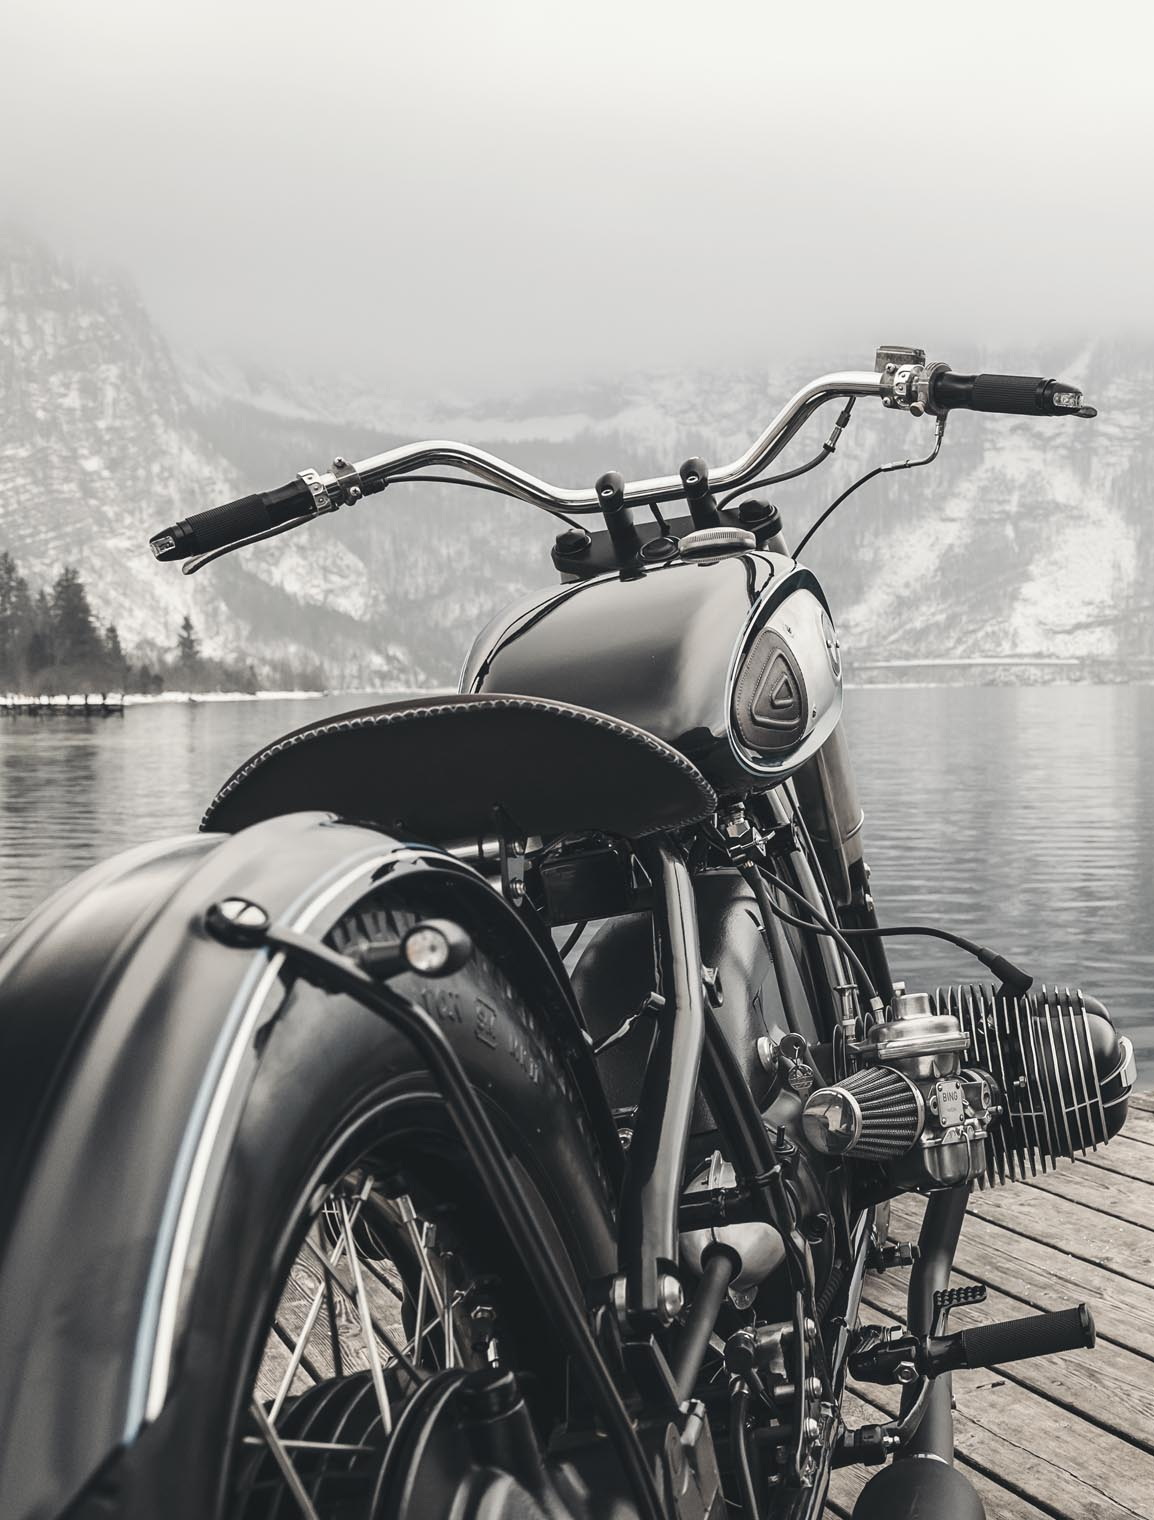 BMW_bobber_custom_motorcycle_lake_mountains_austria_side